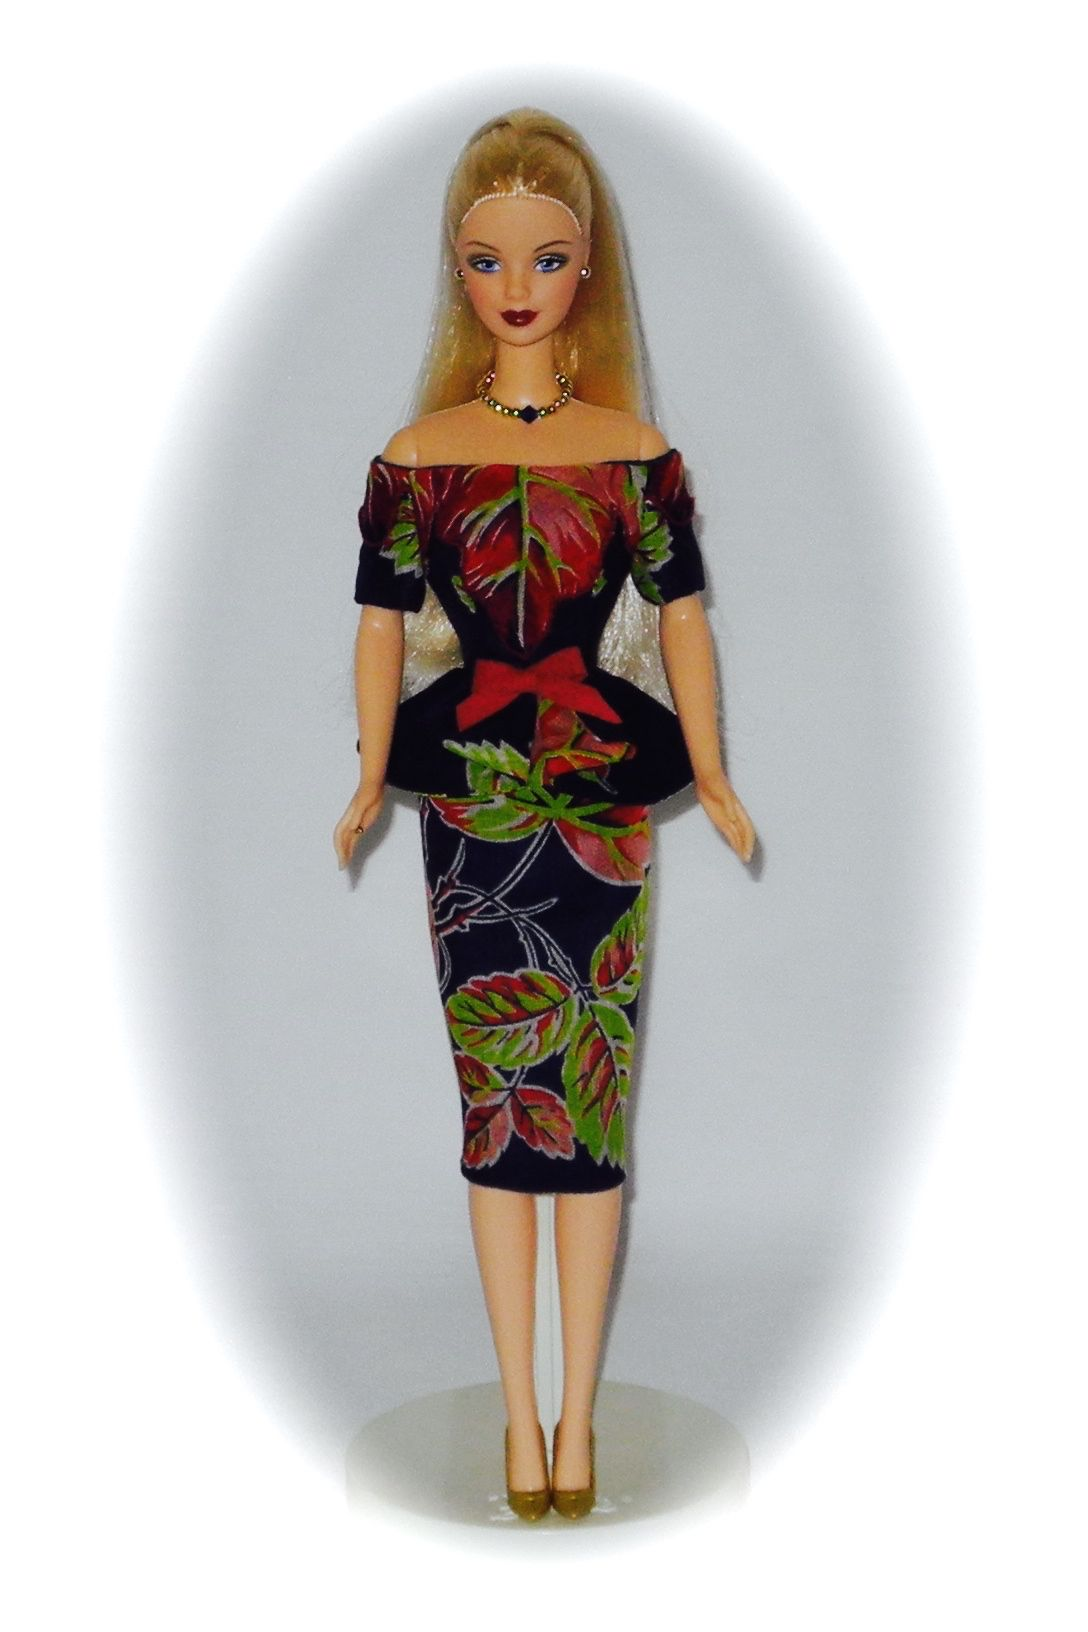 Ring In The New Year Barbie Doll wearing OOAK Hankie Chic